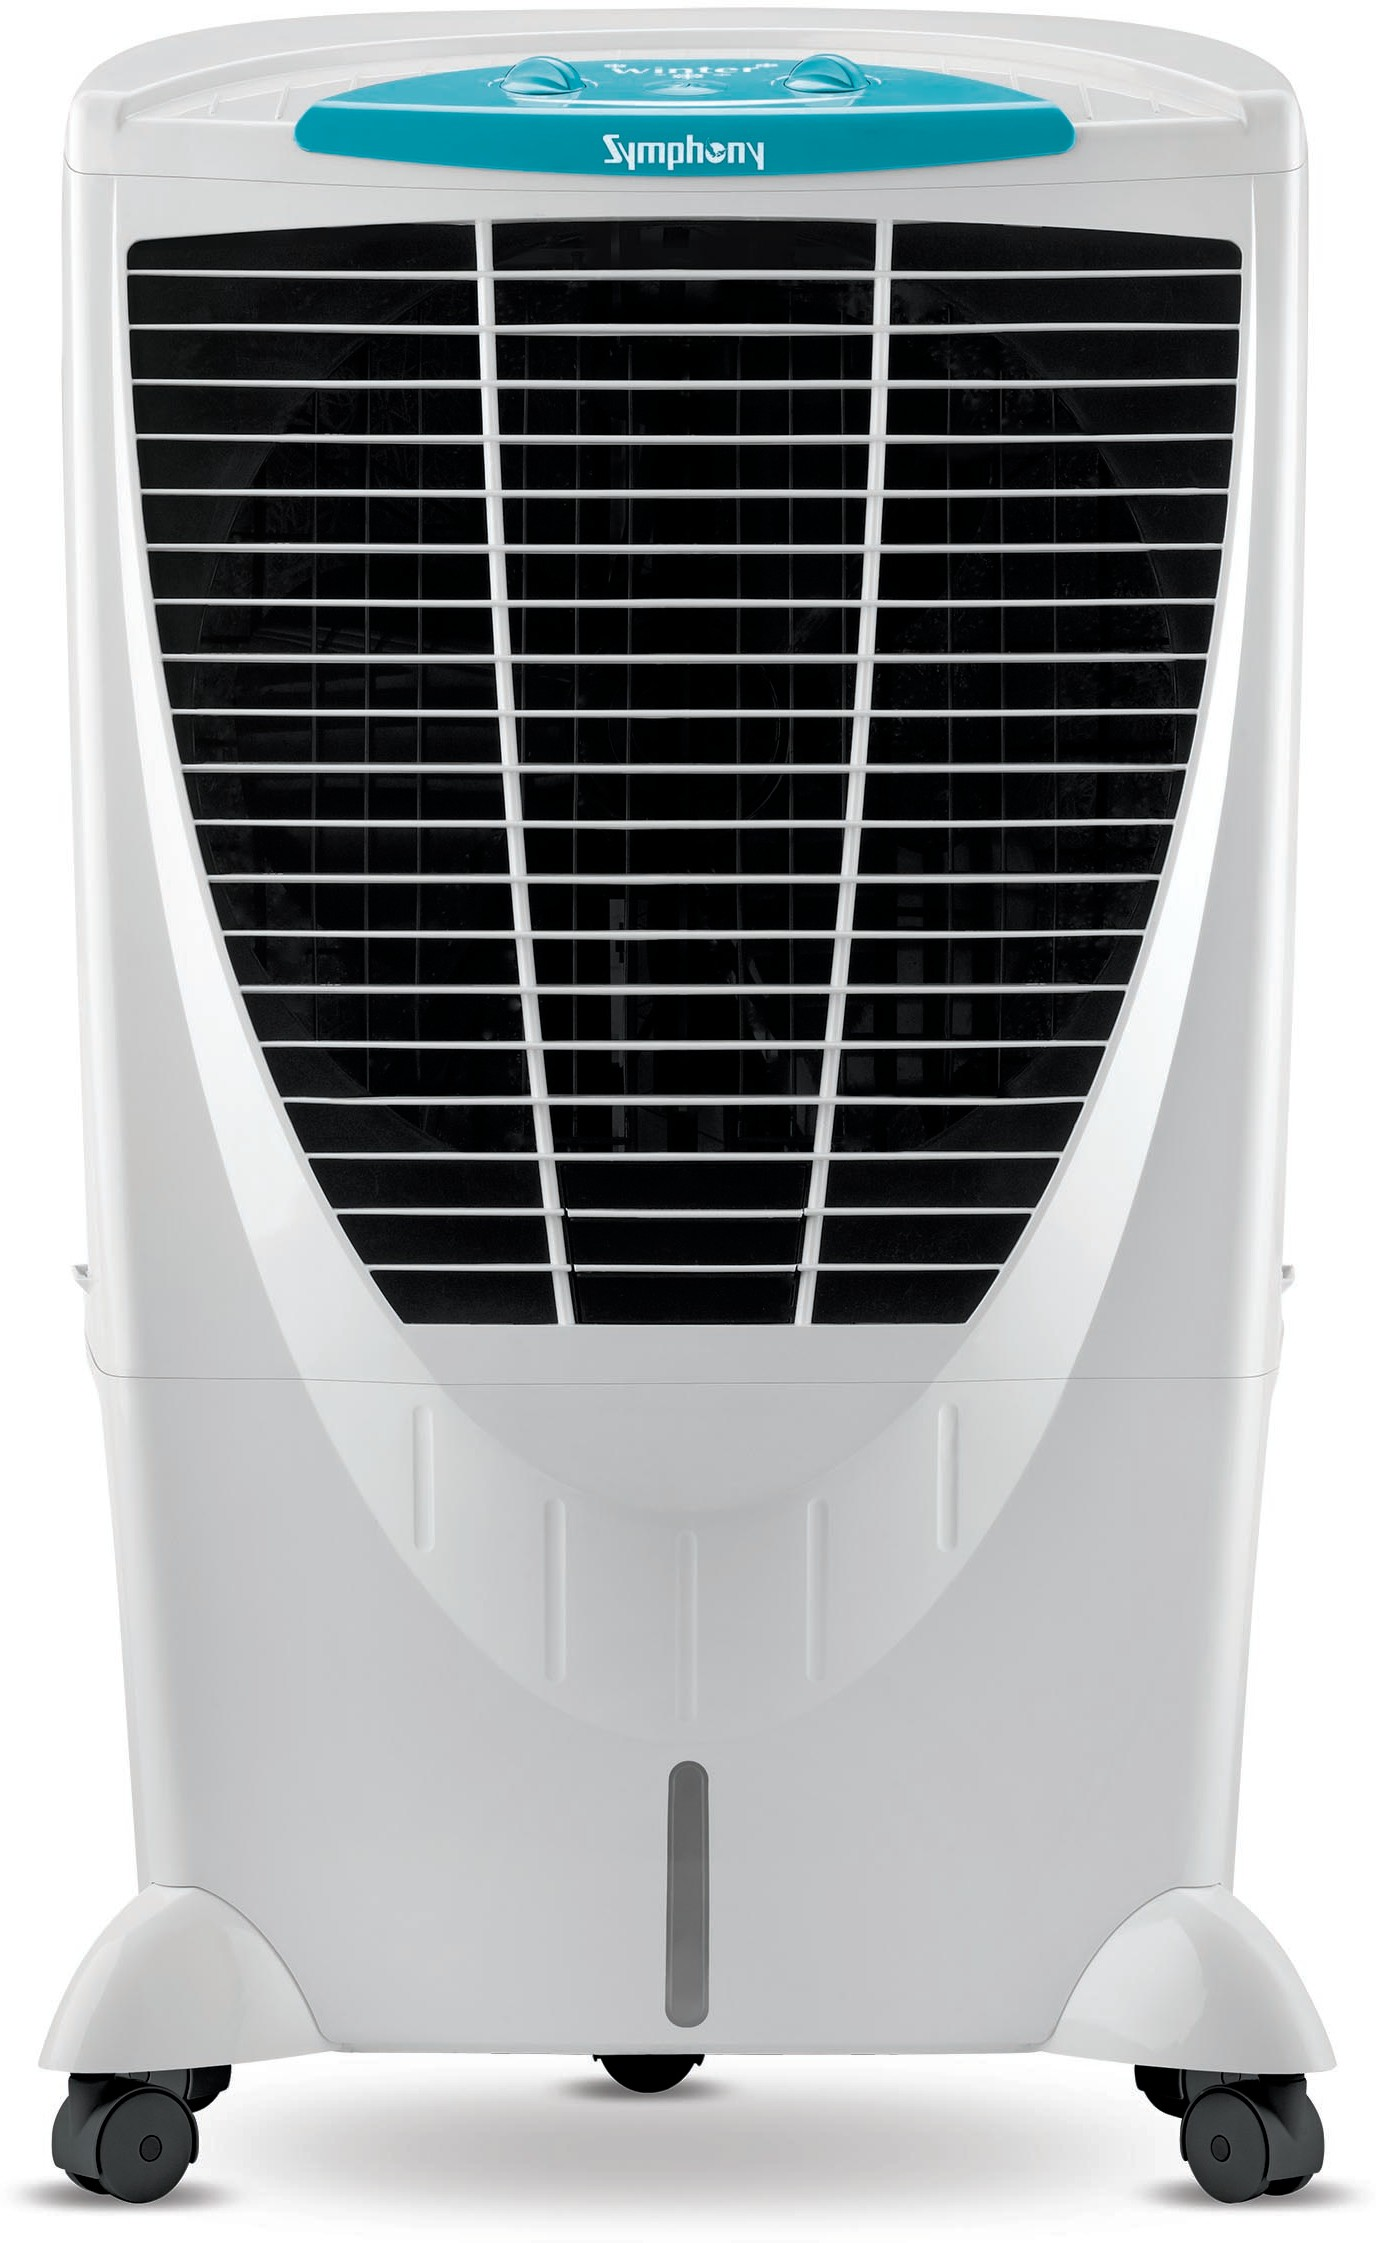 Symphony Winter XL Room Air Cooler Image